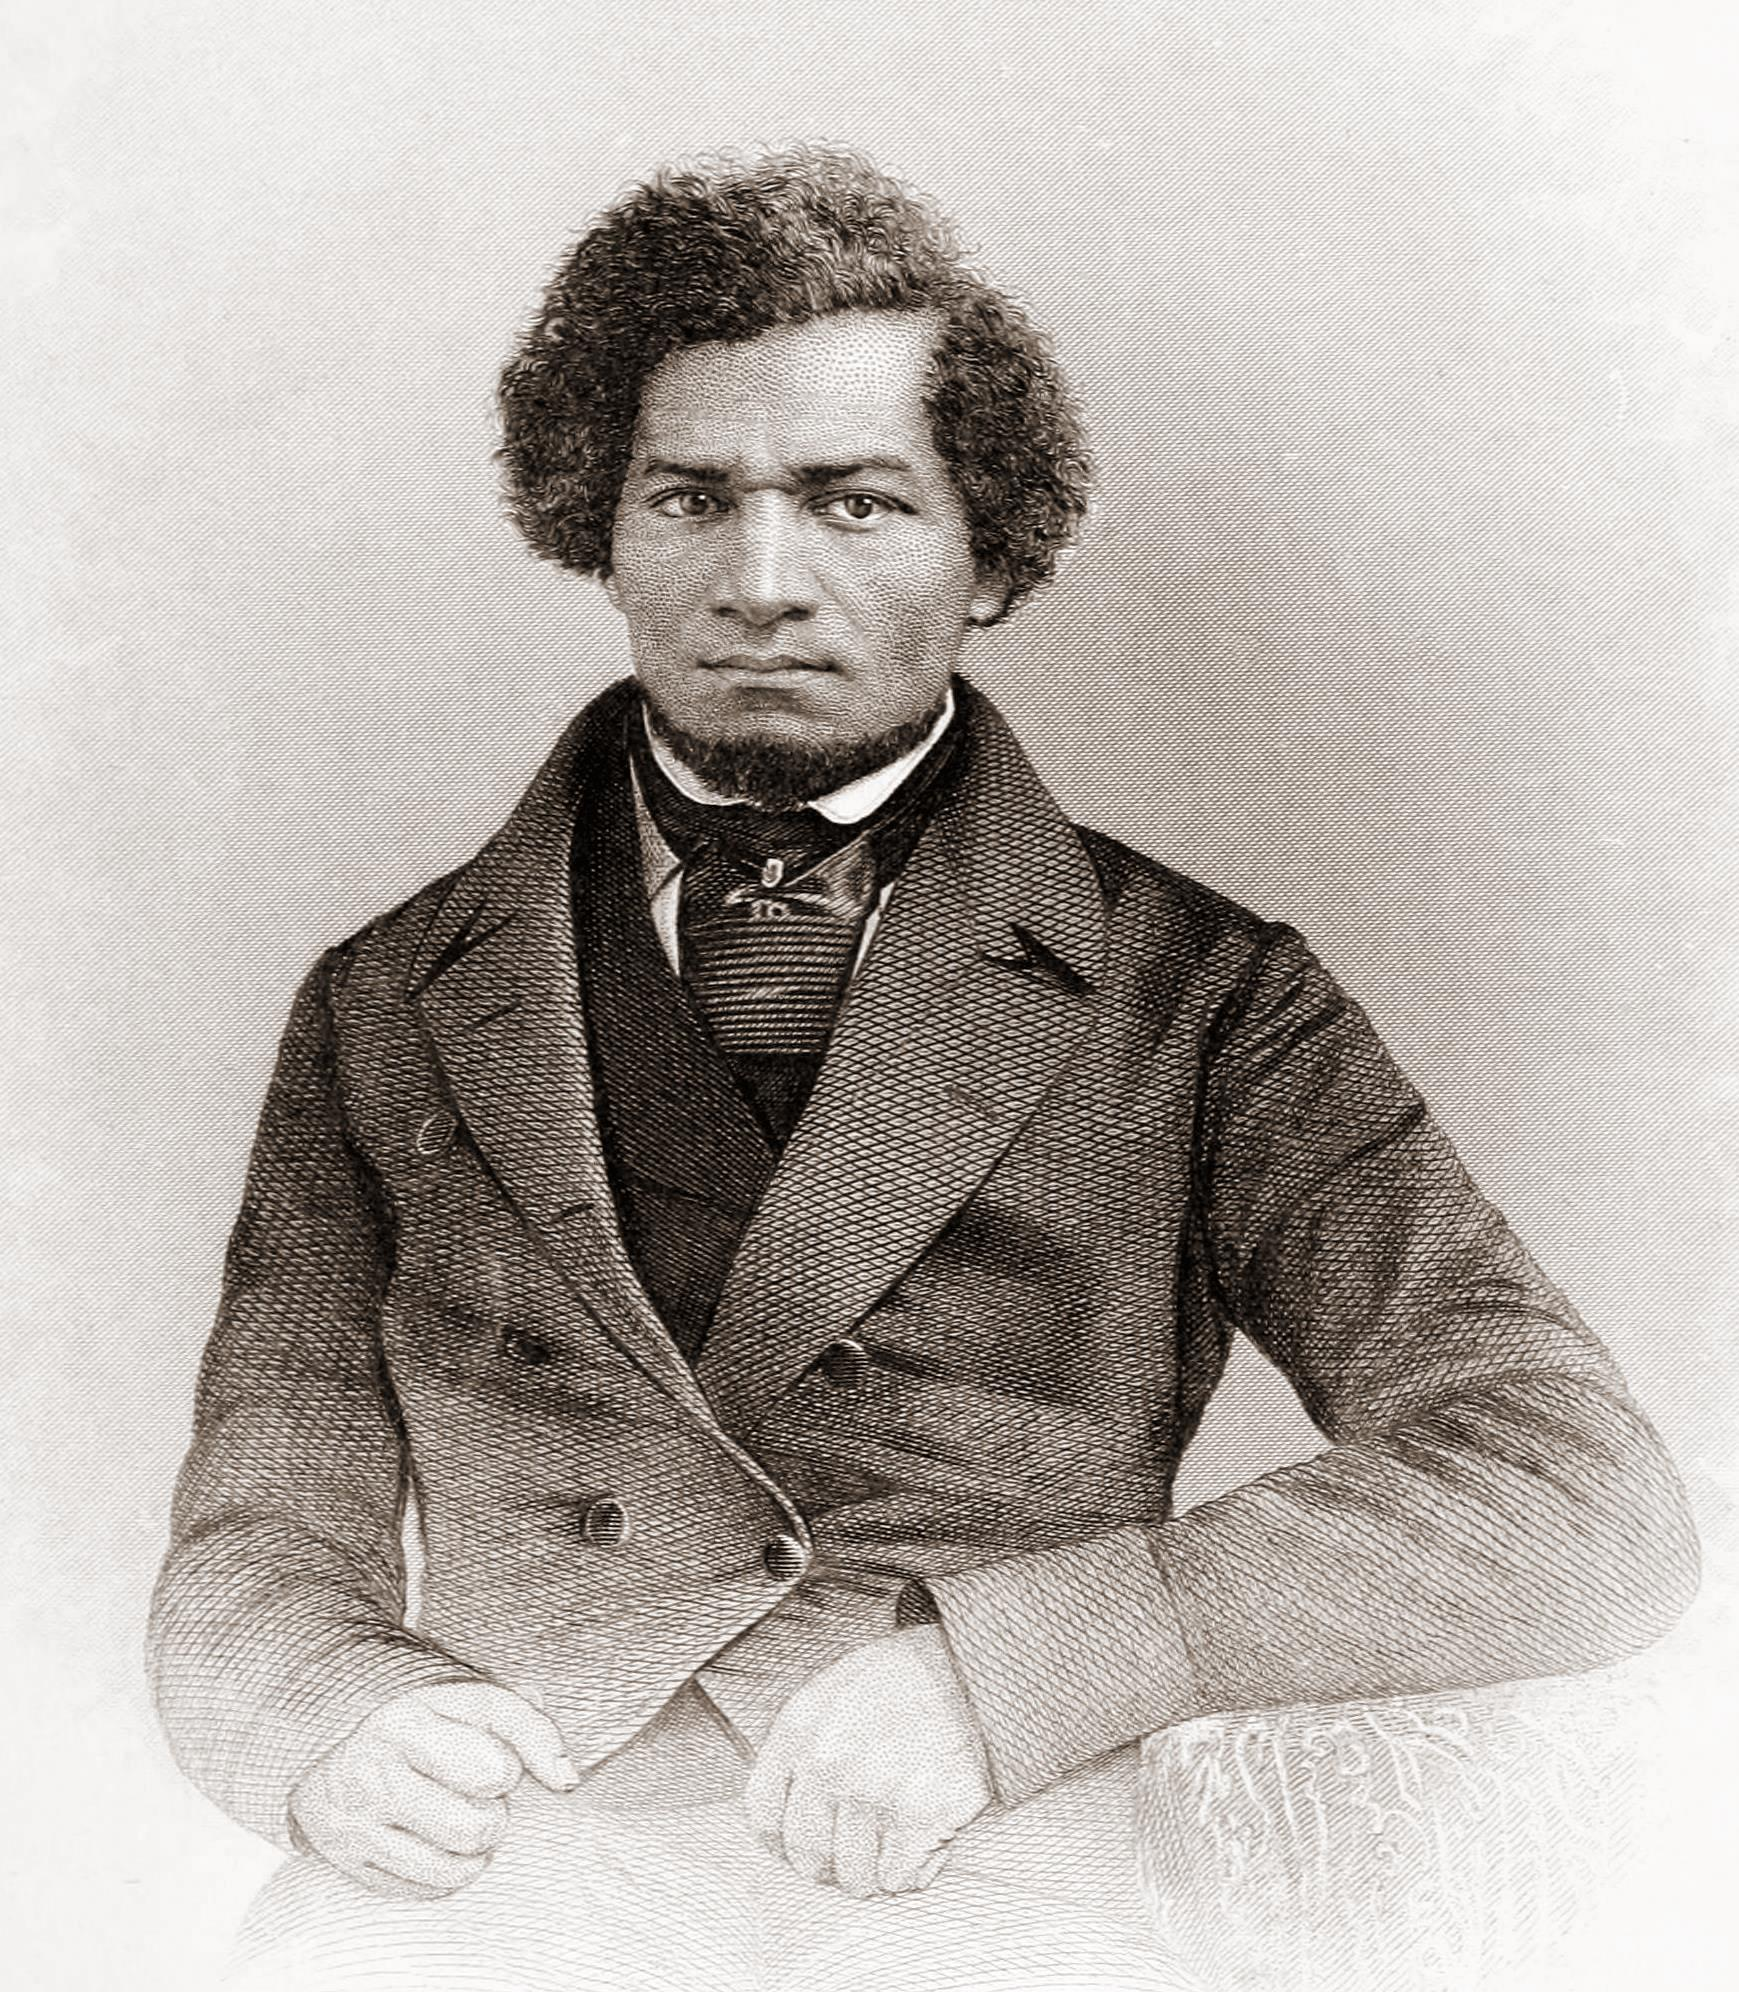 frederick douglass essay conclusion Rhetorical analysis essay diction samples: i am left in the hottest hell of unending slavery strong conclusion frederick douglass, in the end.